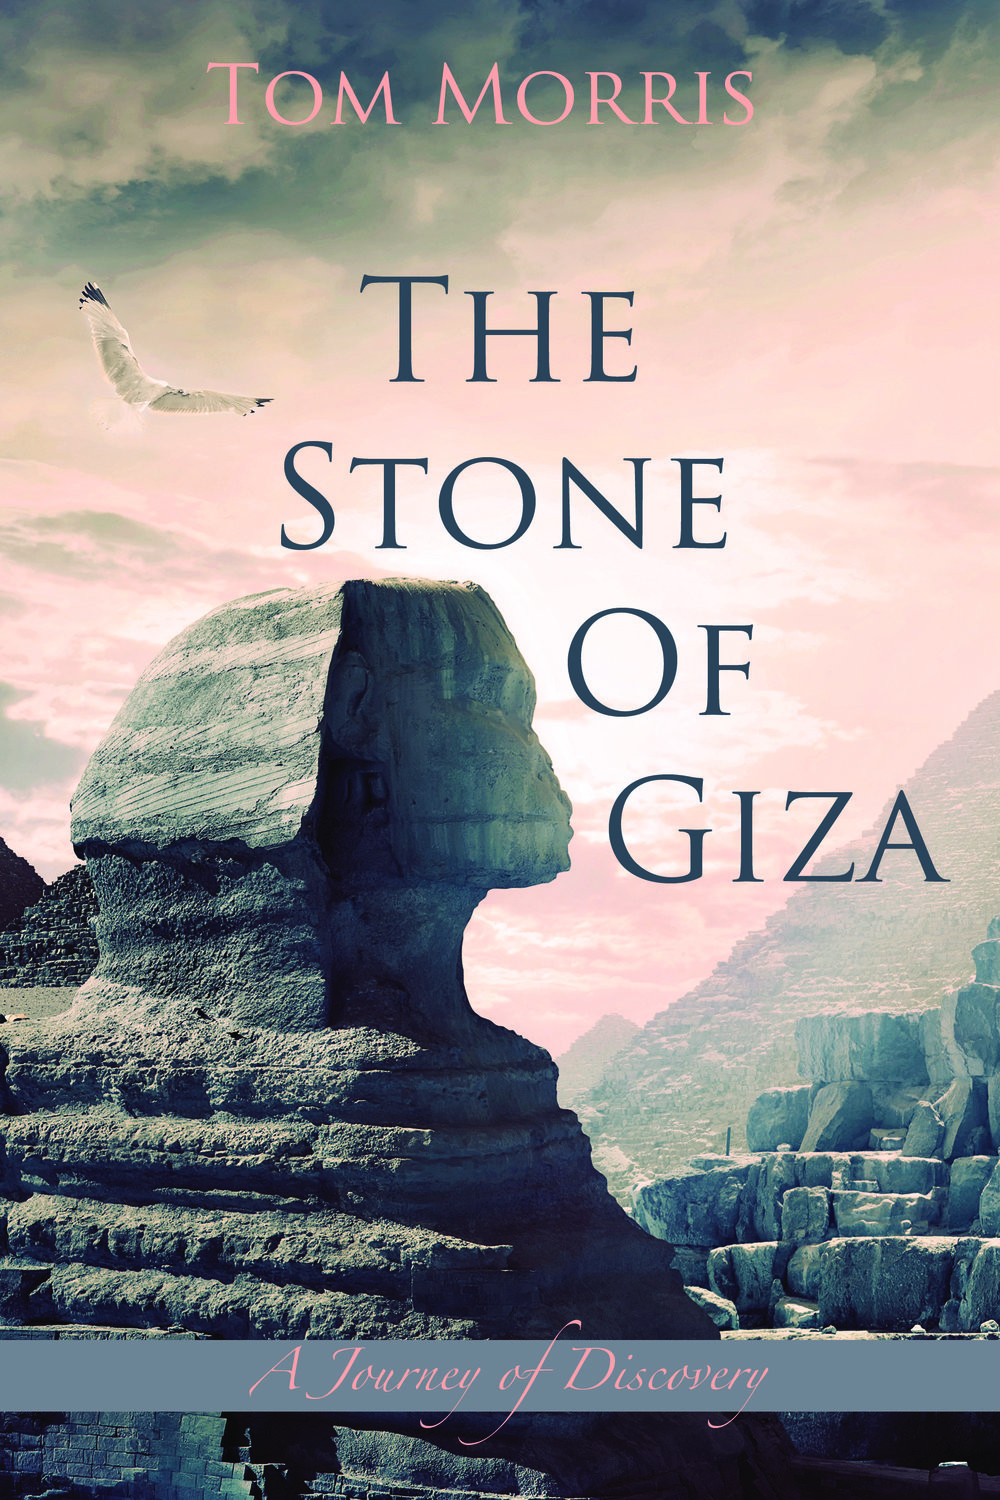 Volume 2 is The Stone of Giza. Click the covers to grab these books! And the newest, Volume 3, is below: The Viper and the Storm.